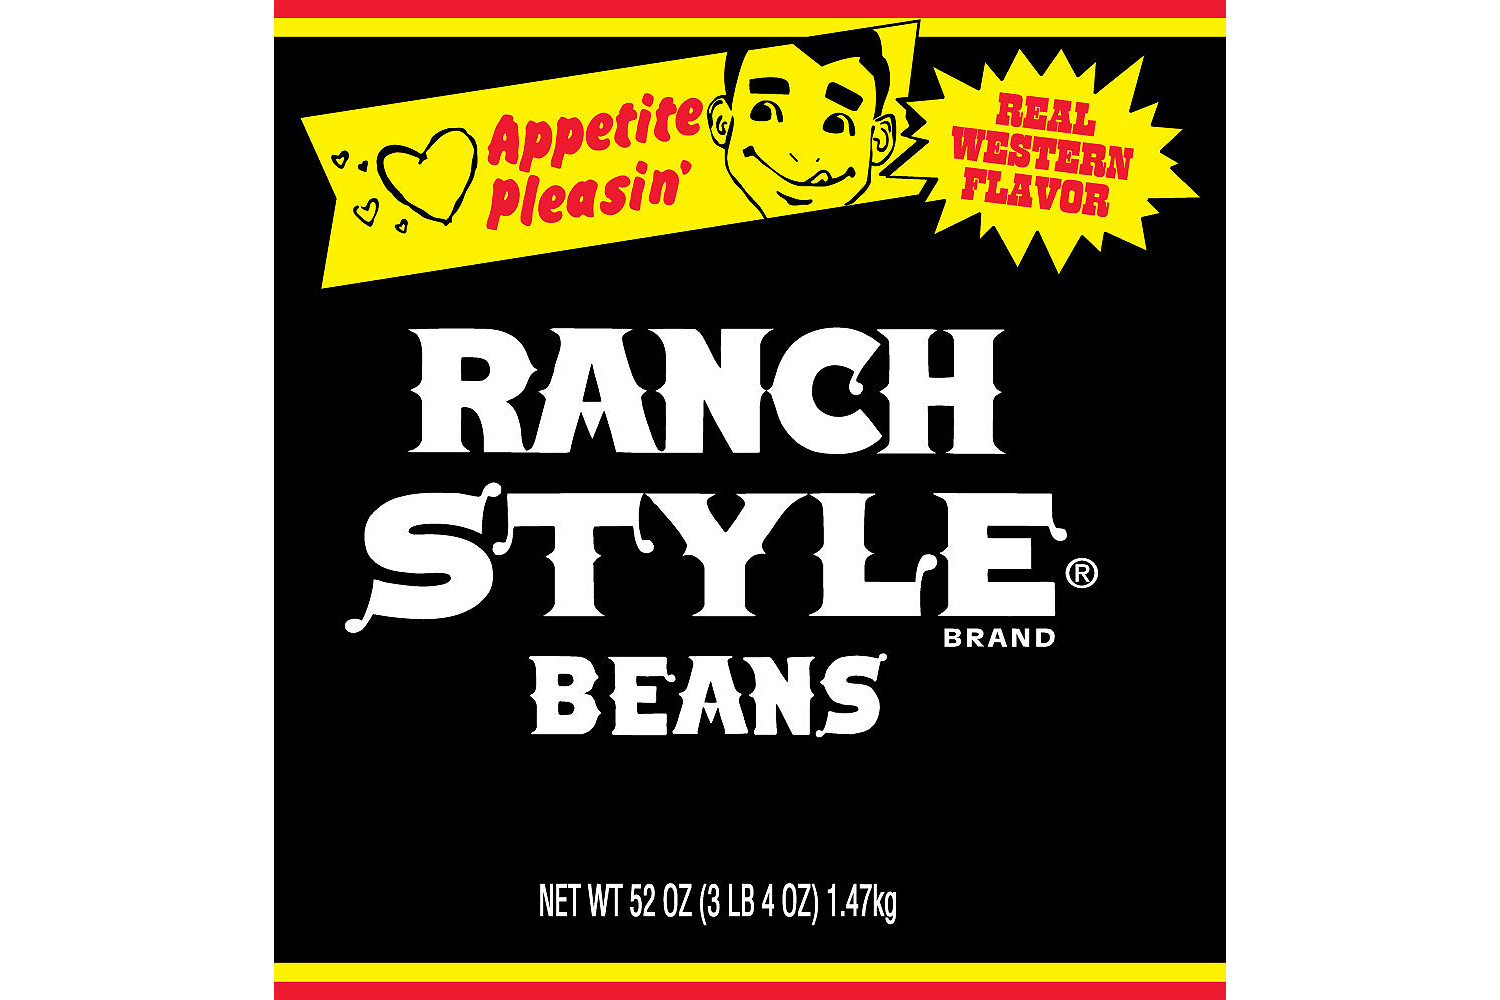 RANCH STYLE Black Beans